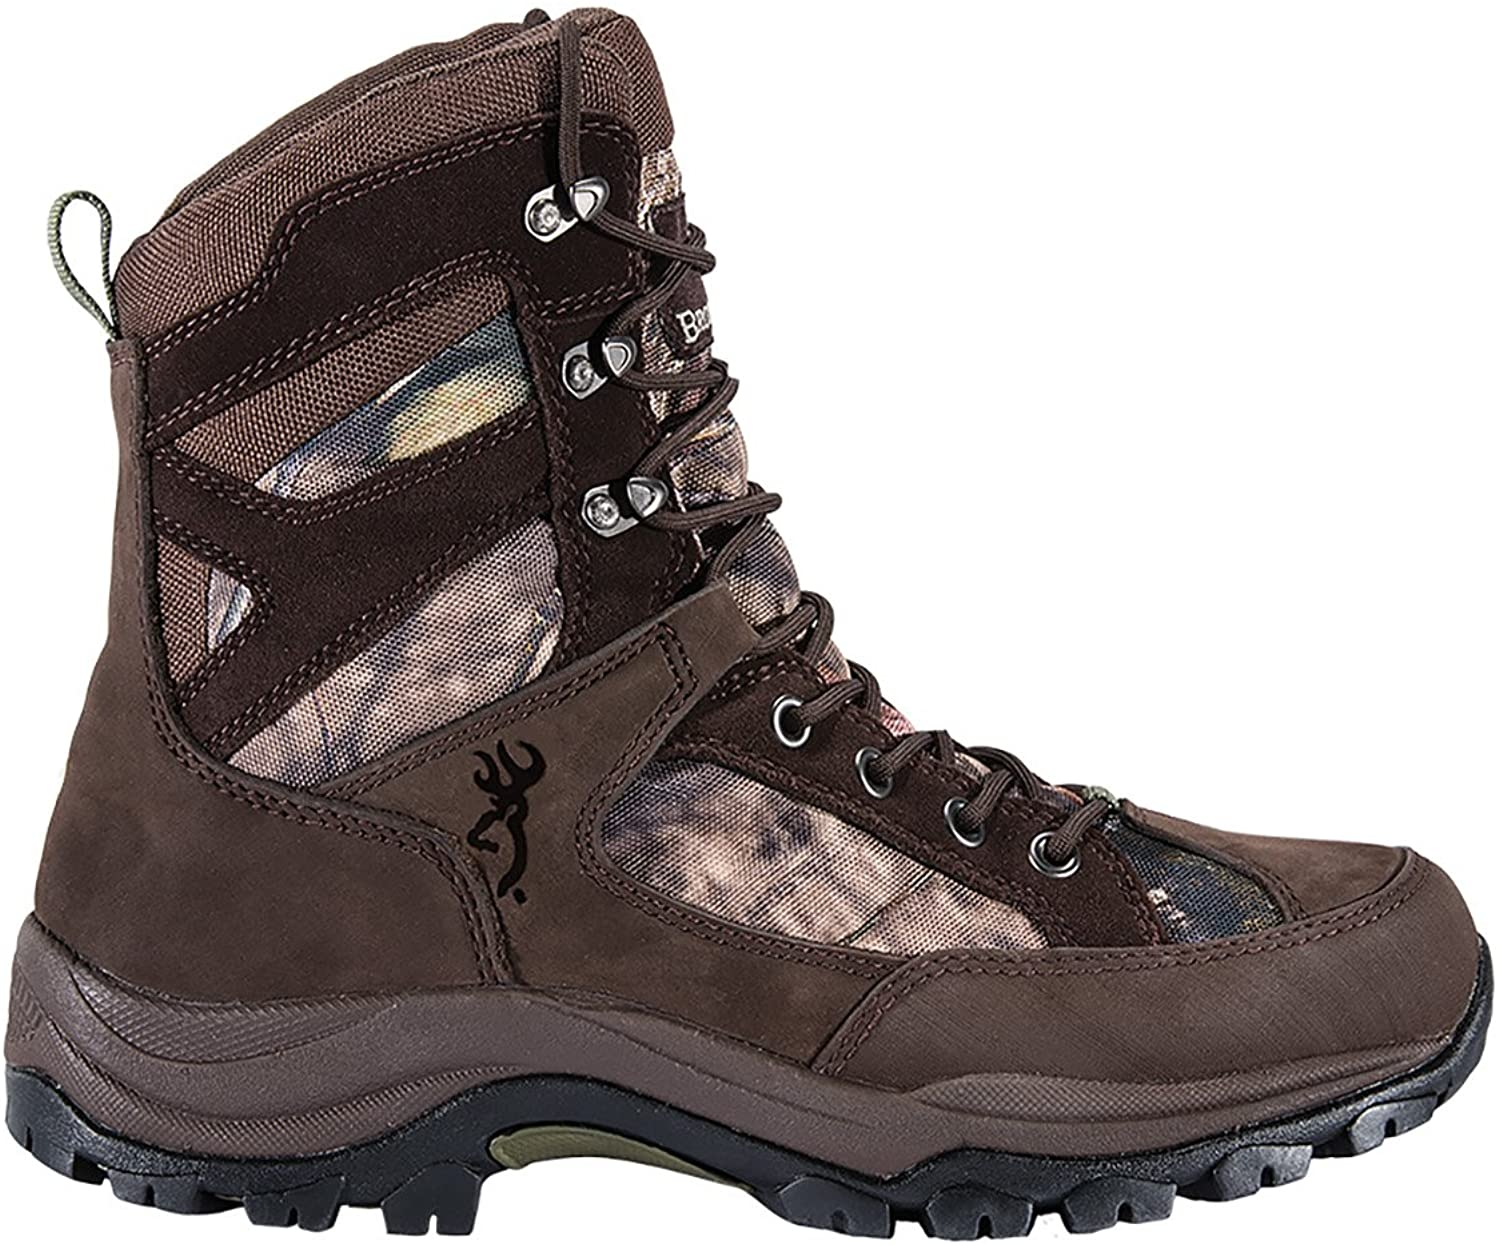 Browning Mens Buck Pursuit 8in Oxford Hunting Boots - 400g, Bracken/Mossy Oak F000005620234